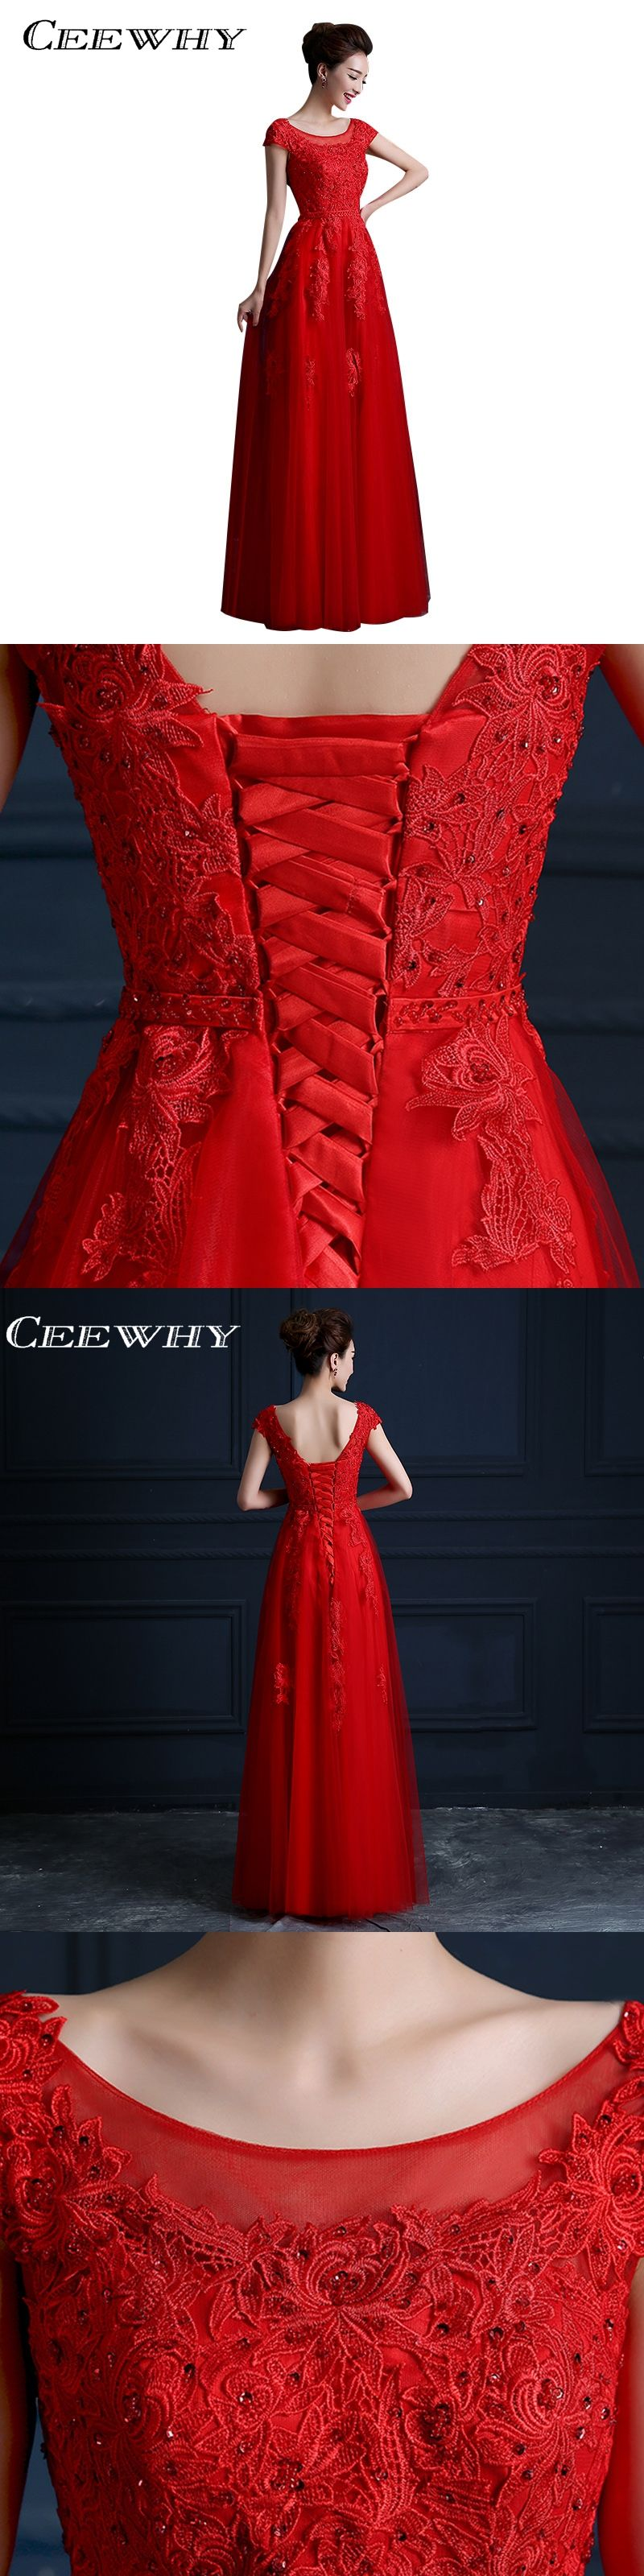 Ceewhy short sleeve embroidery aline evening dress formal